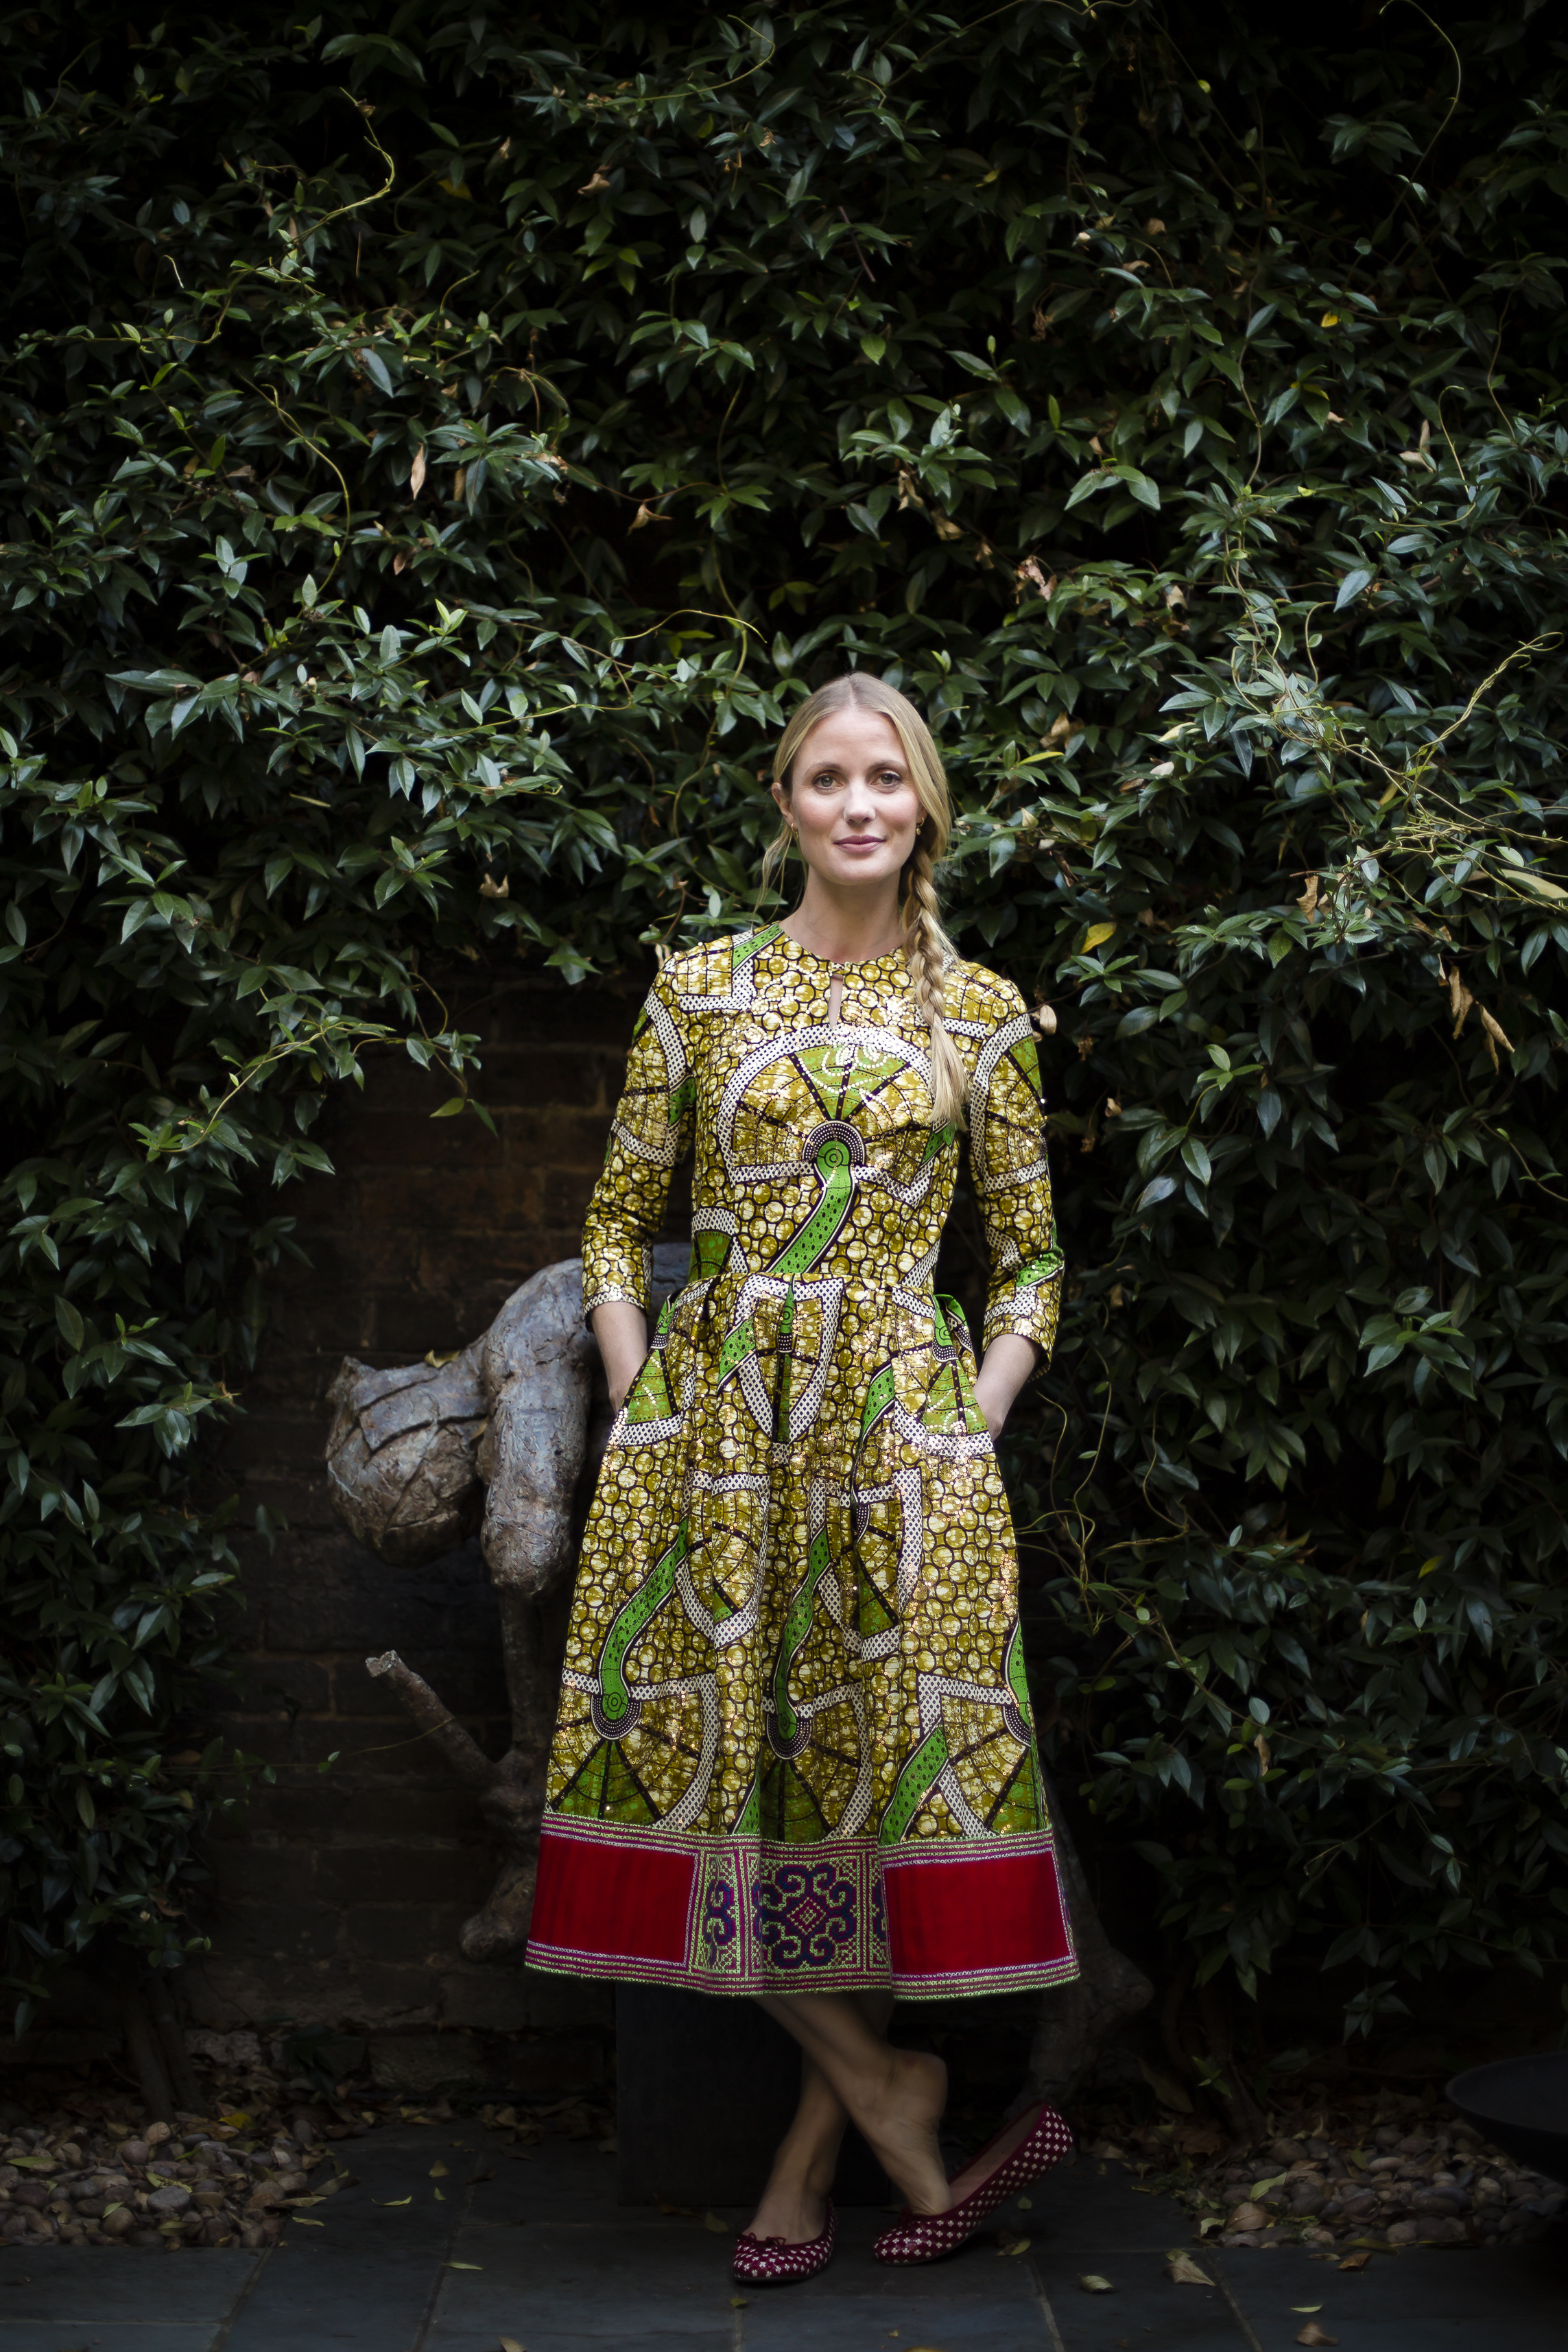 Eponine x Willow Crossley: An African Cotton Dress with a Clashing Hmong Trim